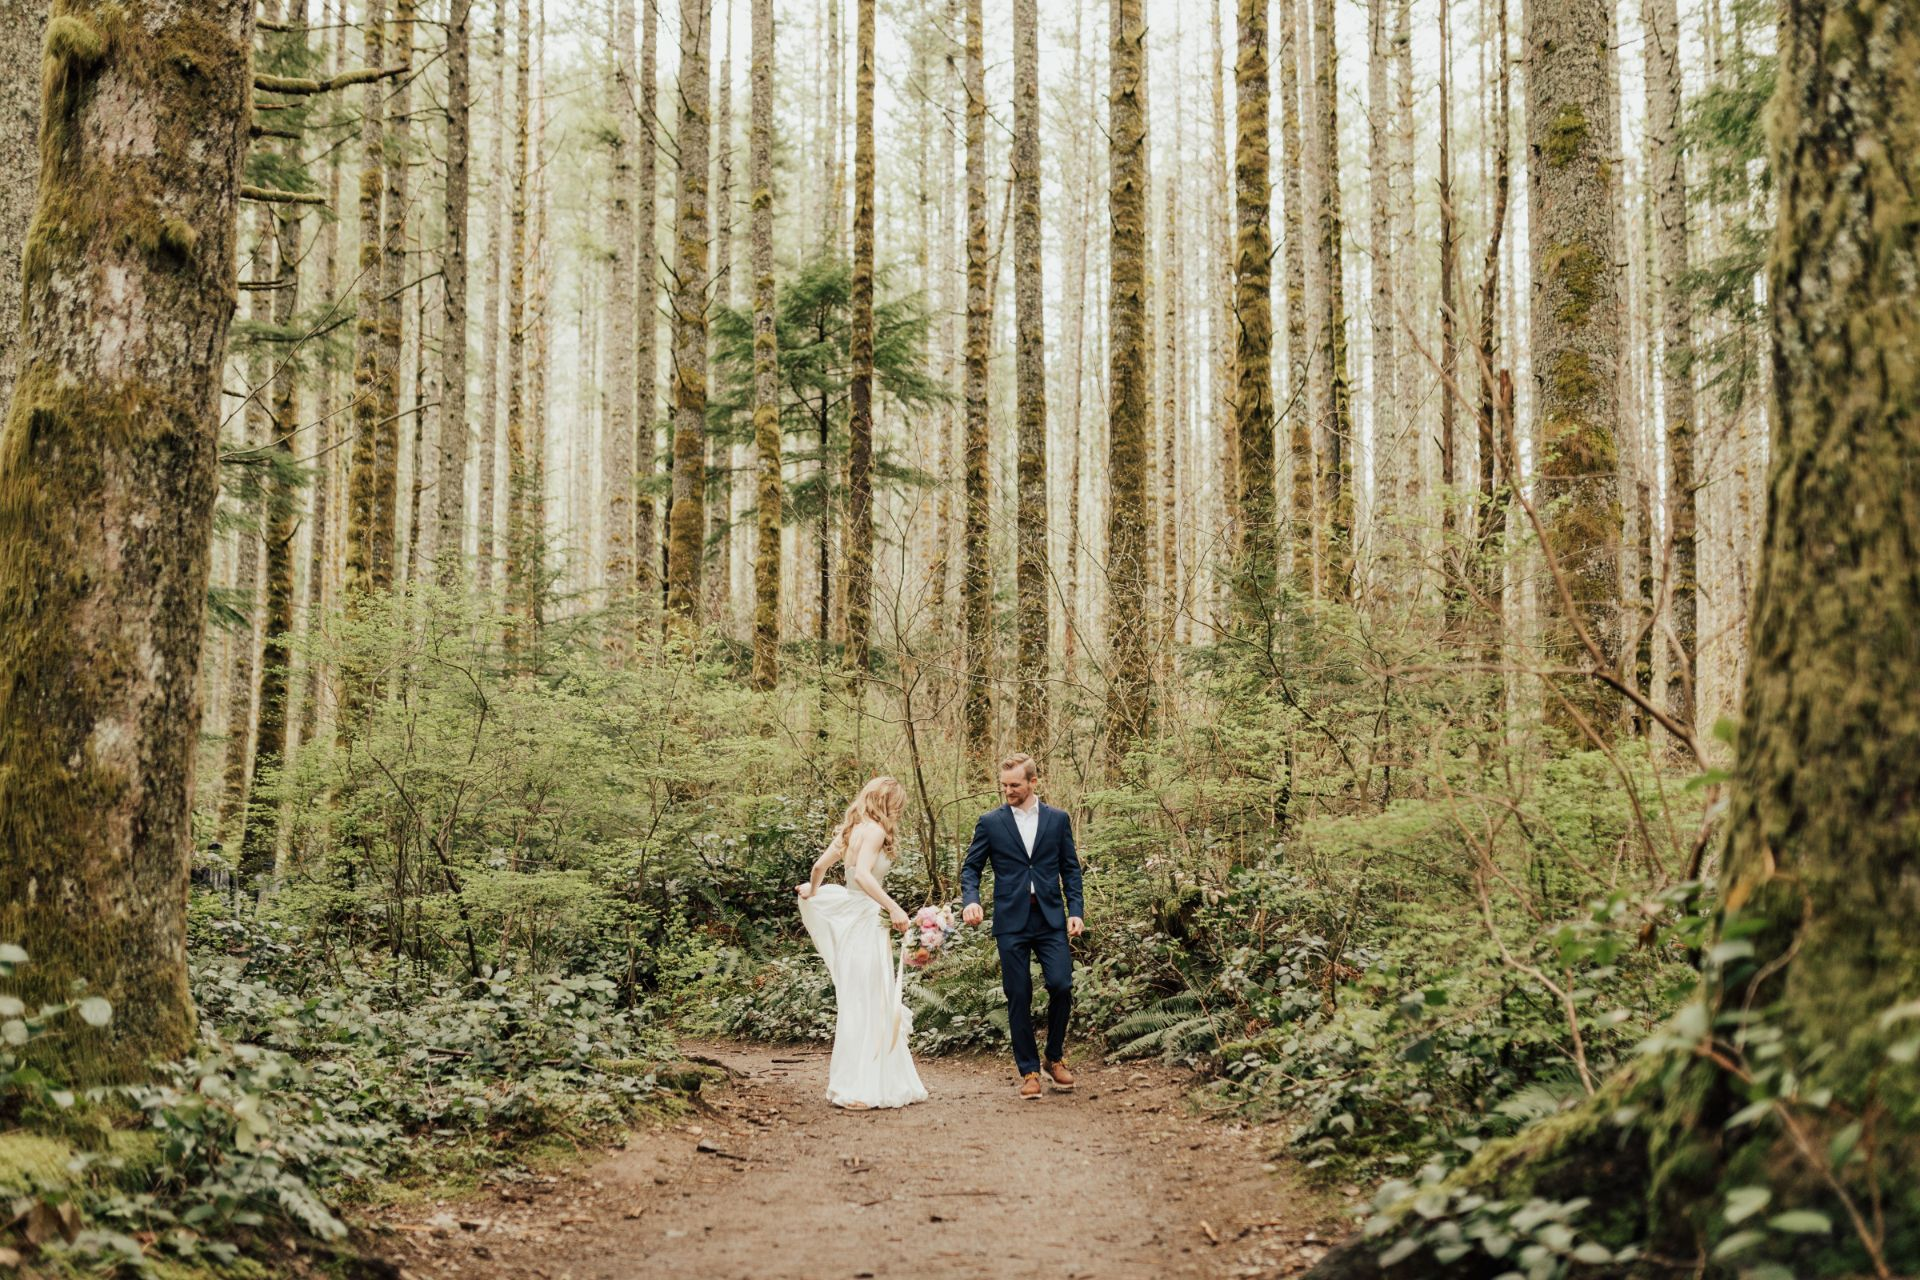 rachelsyrisko_seattleweddingphotographer_engagement_northbendelopement_rattlesnakelake-1-large